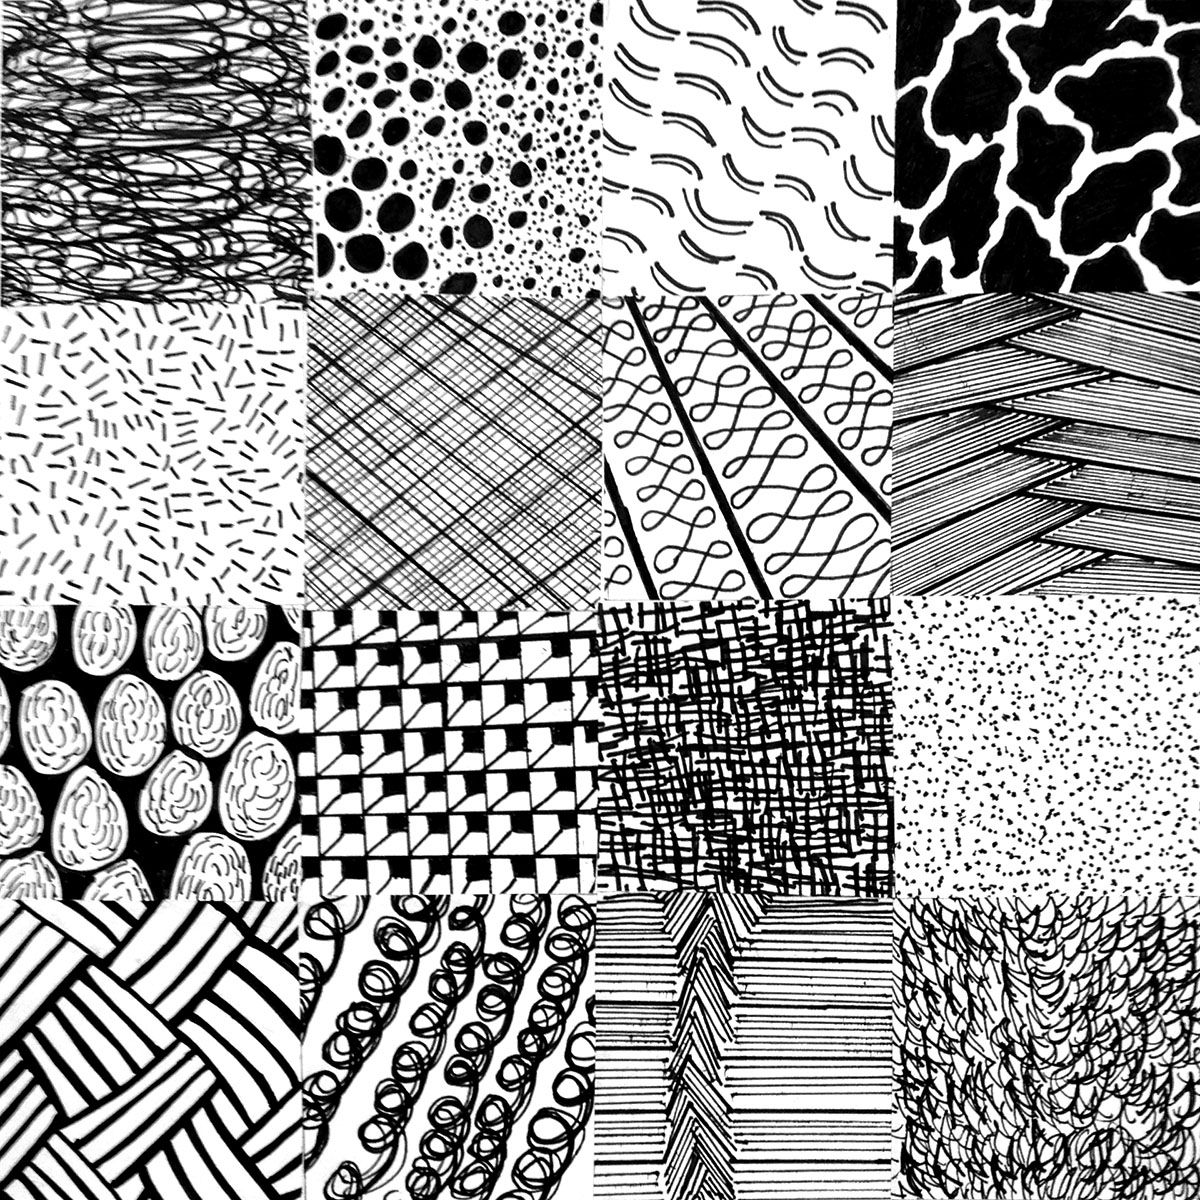 Studio Project 2 - Balance, Scale, Texture.   Objective: Create 16 different squares with various textures using balance and scale, as well as varying values from dark to light. Material used: Micron Pens in different sizes.